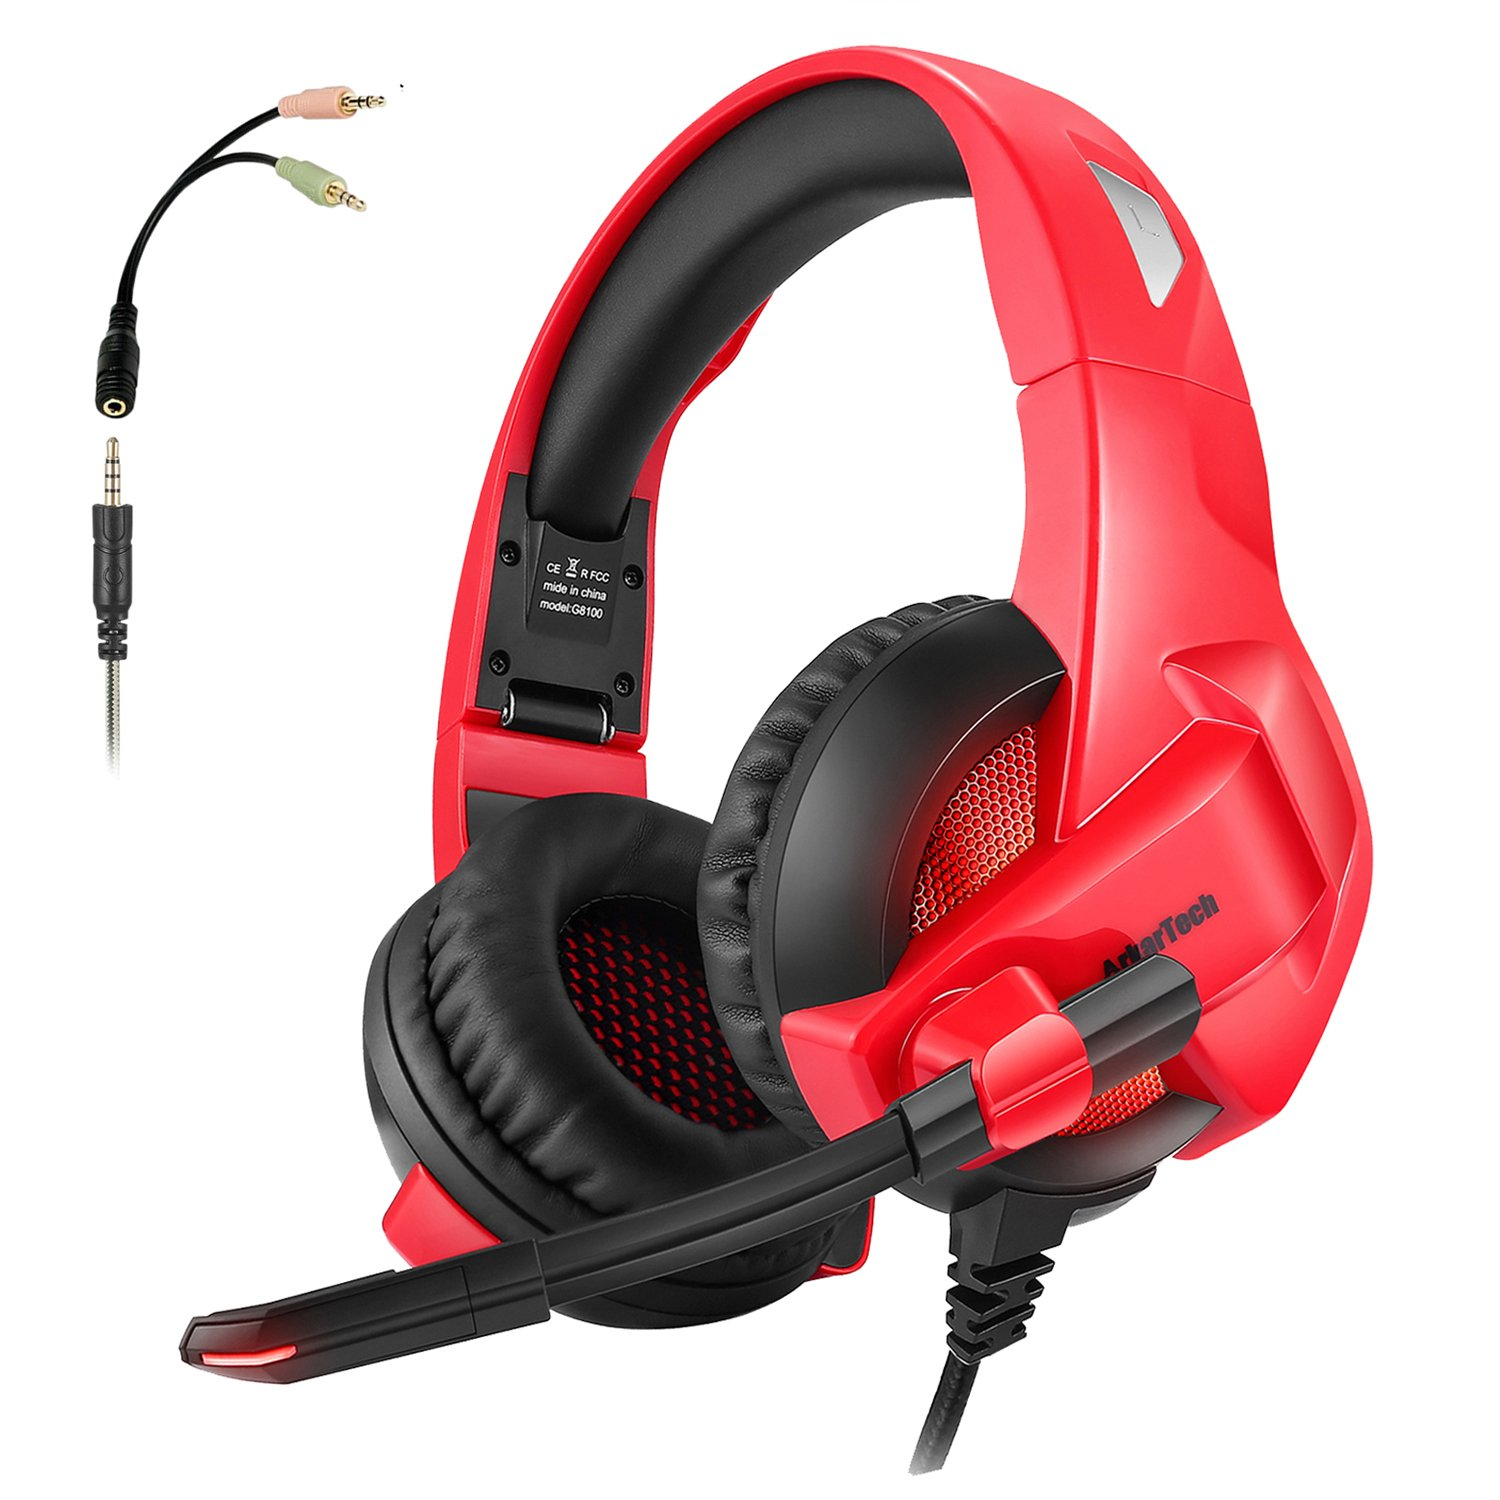 Folding Gaming Headset for Xbox One PS4, ARKARTECH Noise Cancelling Over Ear Headphones with Mic, LED Light, Bass Stereo Sound, Soft Memory Earmuffs Volume Control for PC,Laptop, Tablet, Mobile